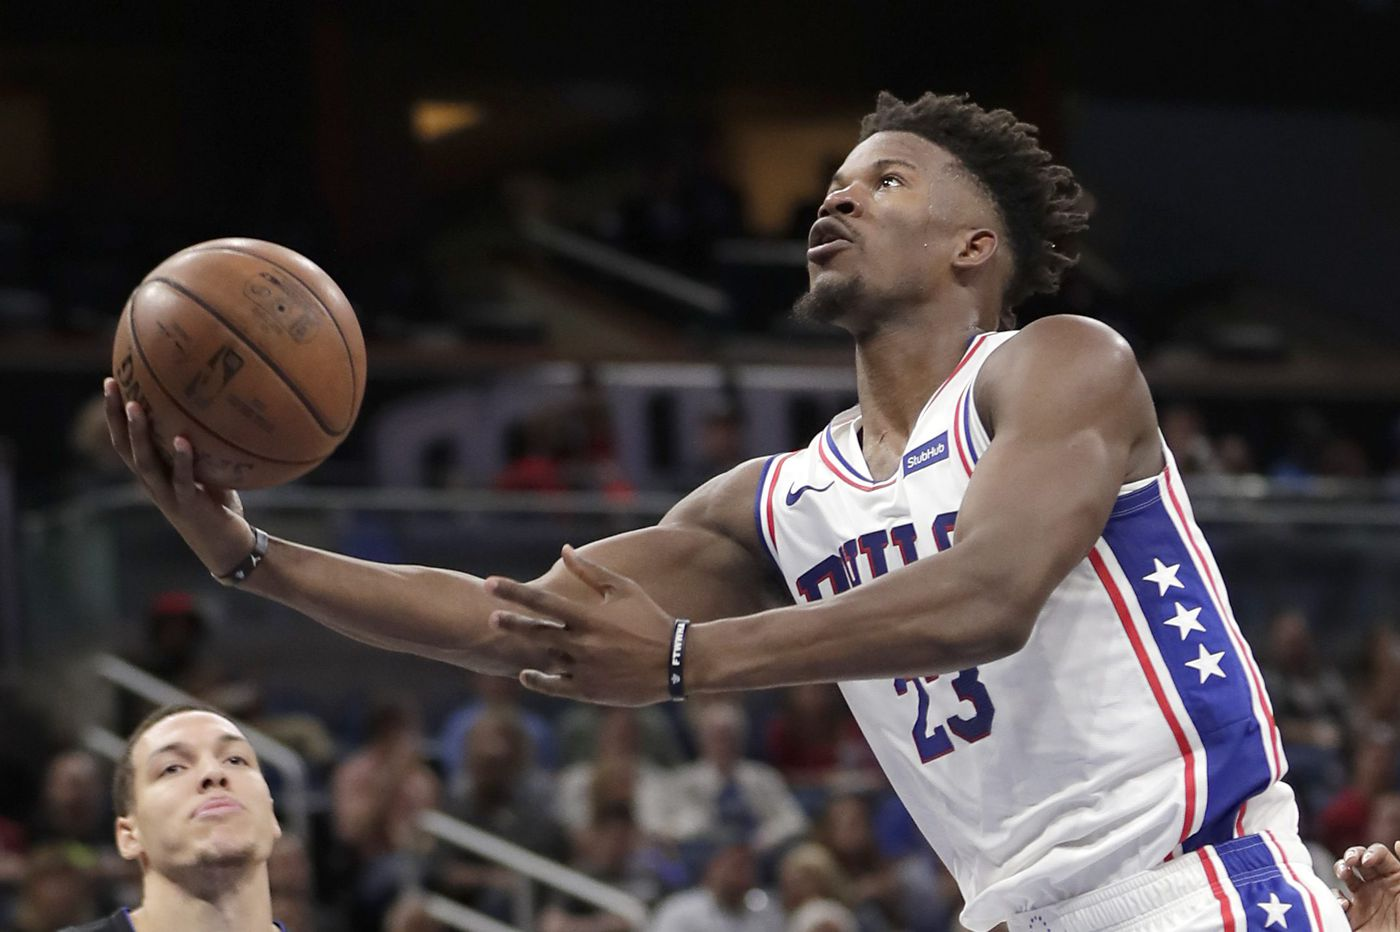 683d7785f For the Sixers